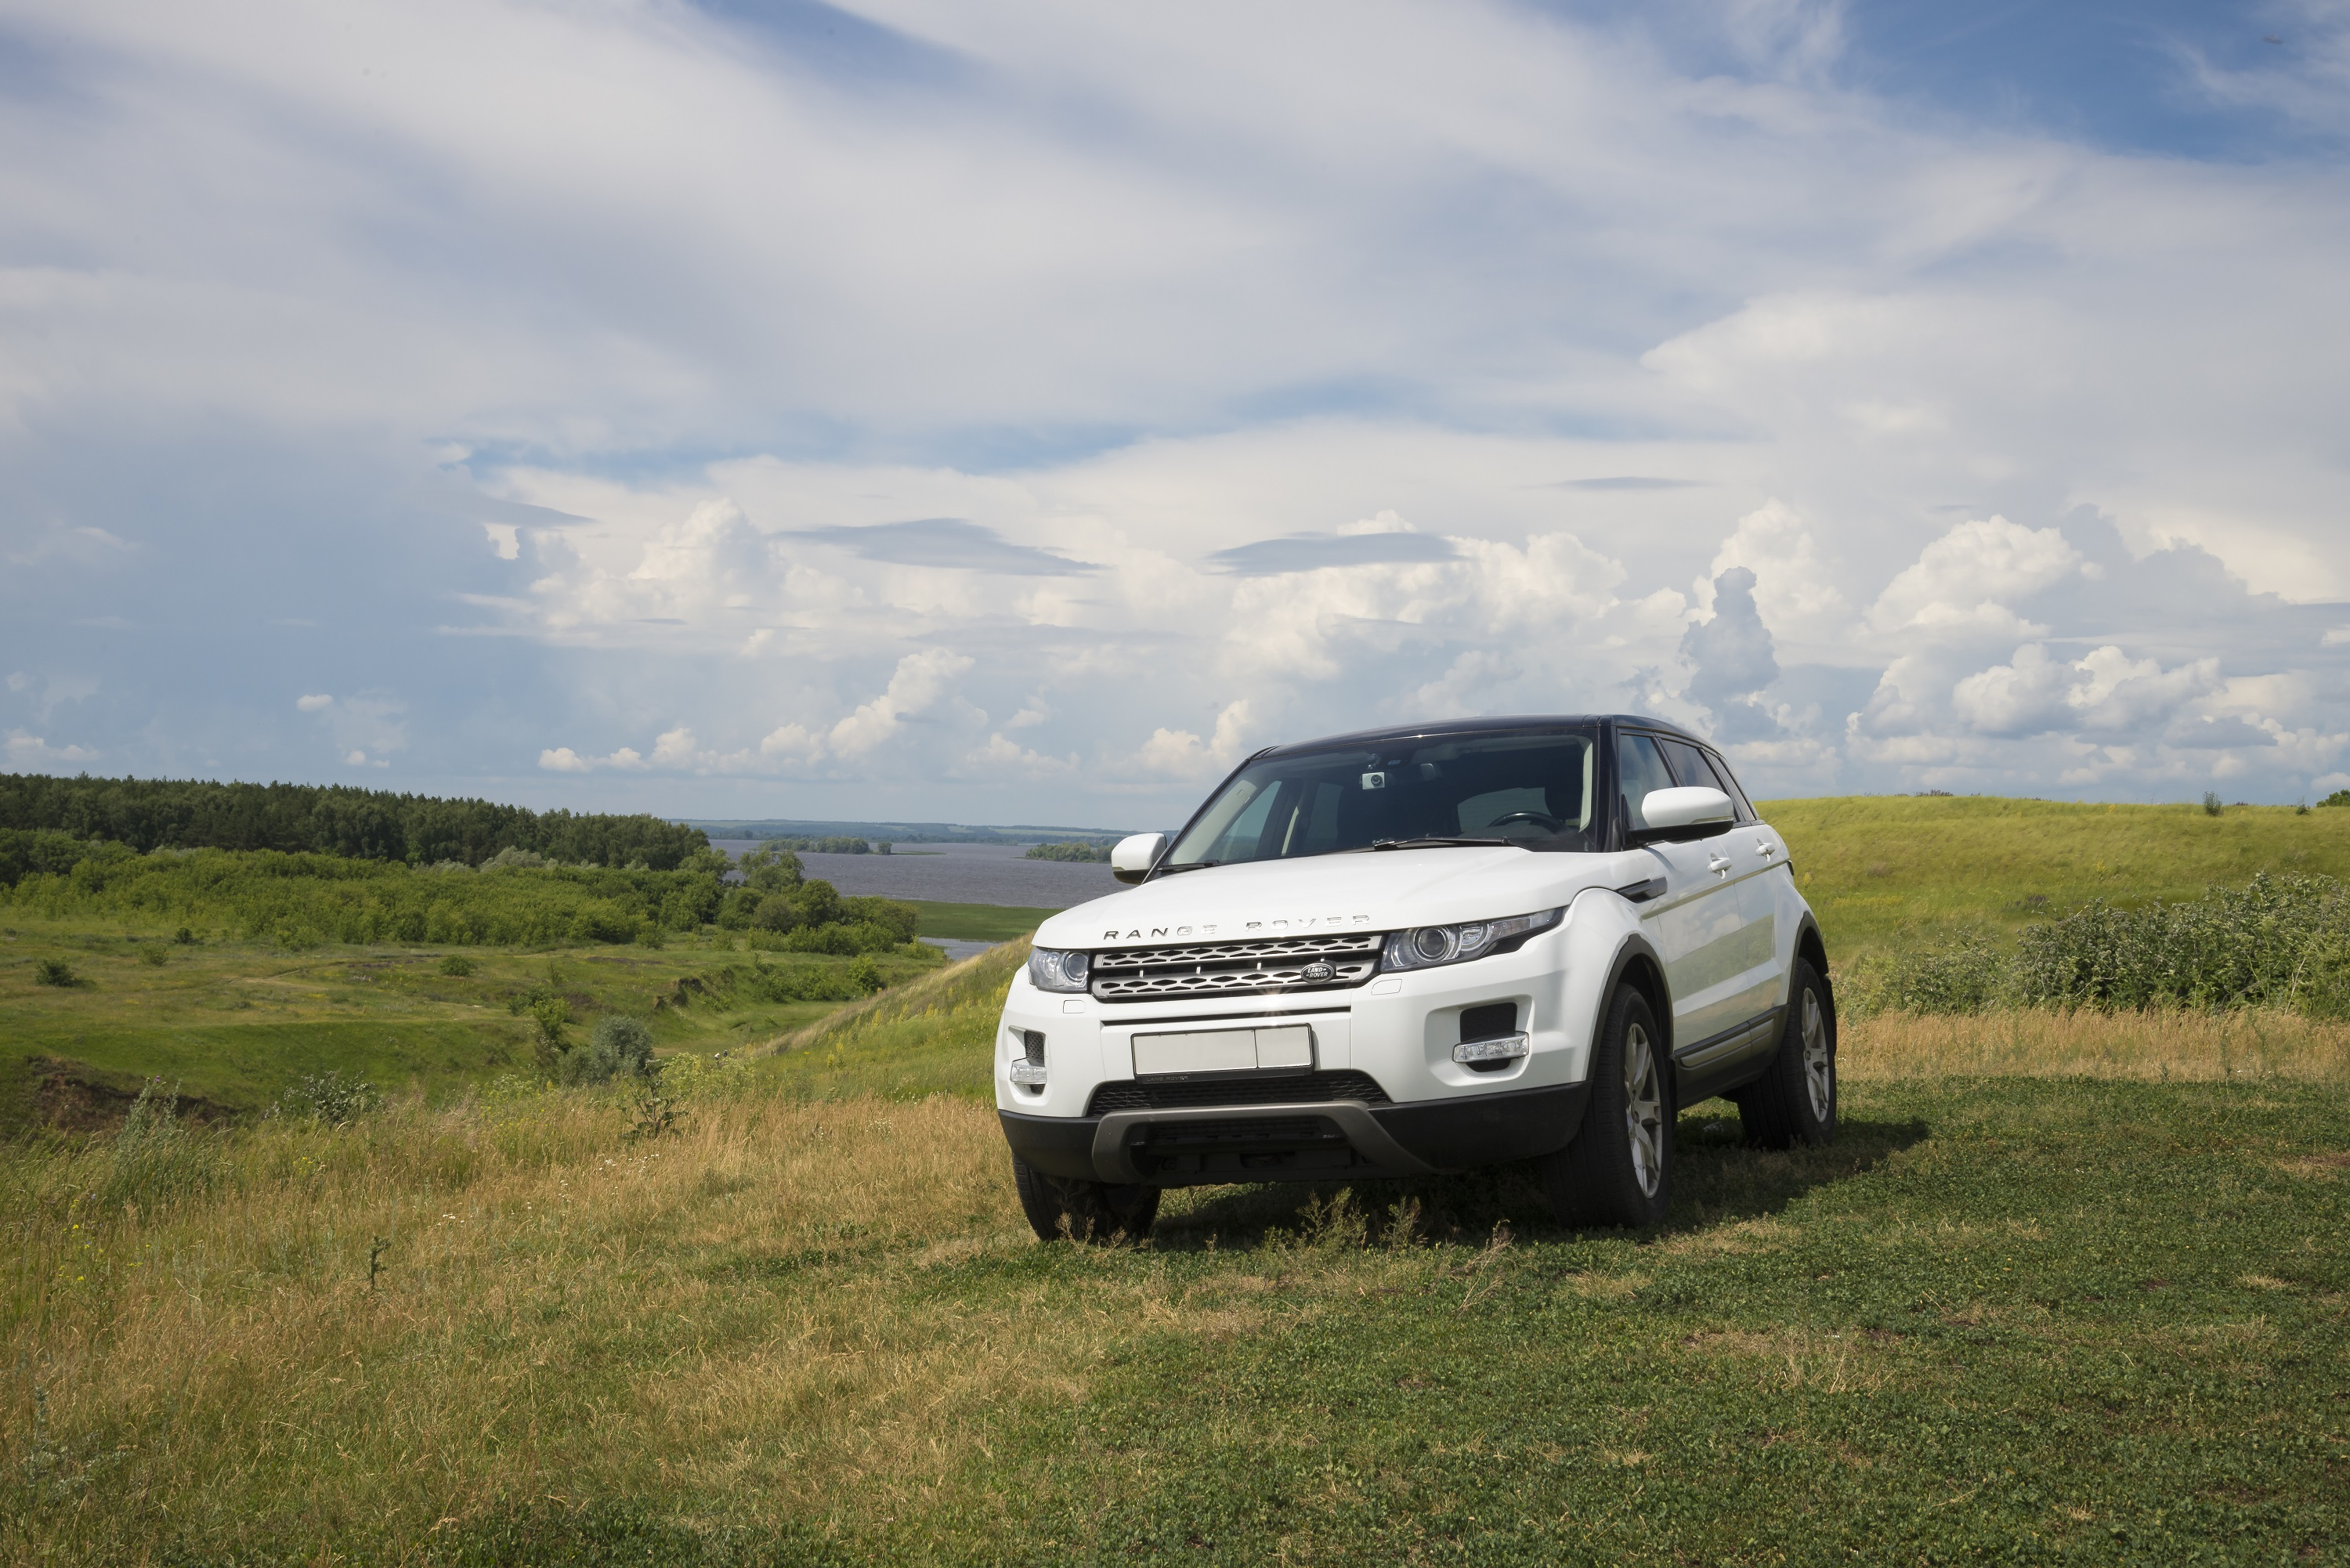 How to Prepare Your Land Rover for Spring